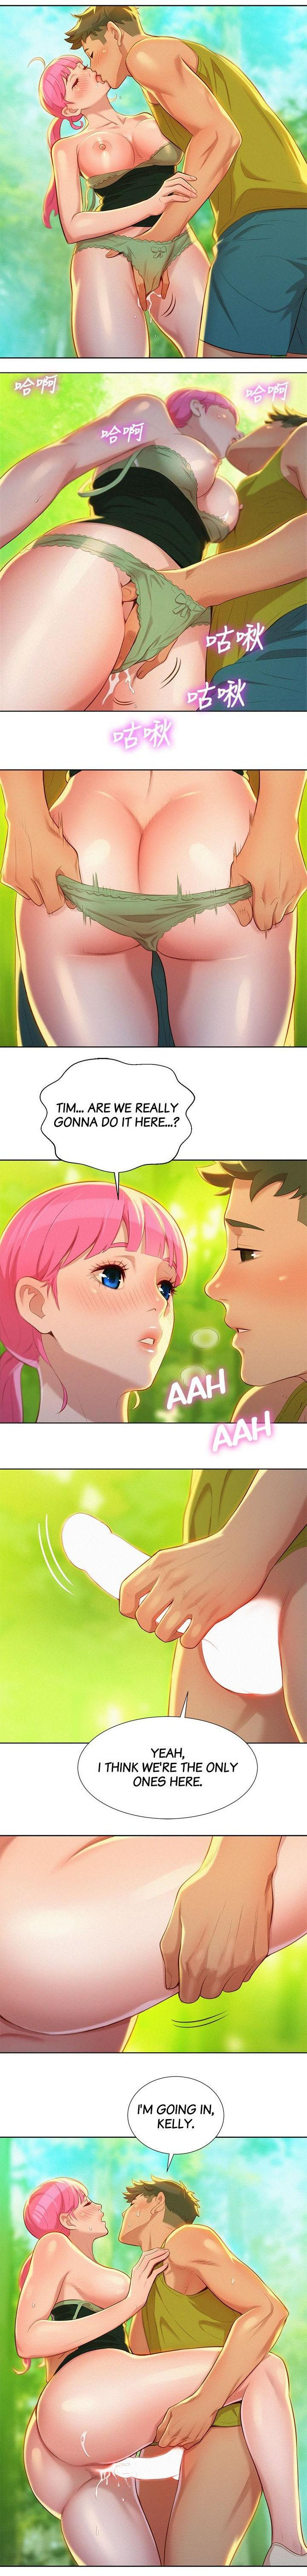 What do you Take me For? Ch.42/? 228